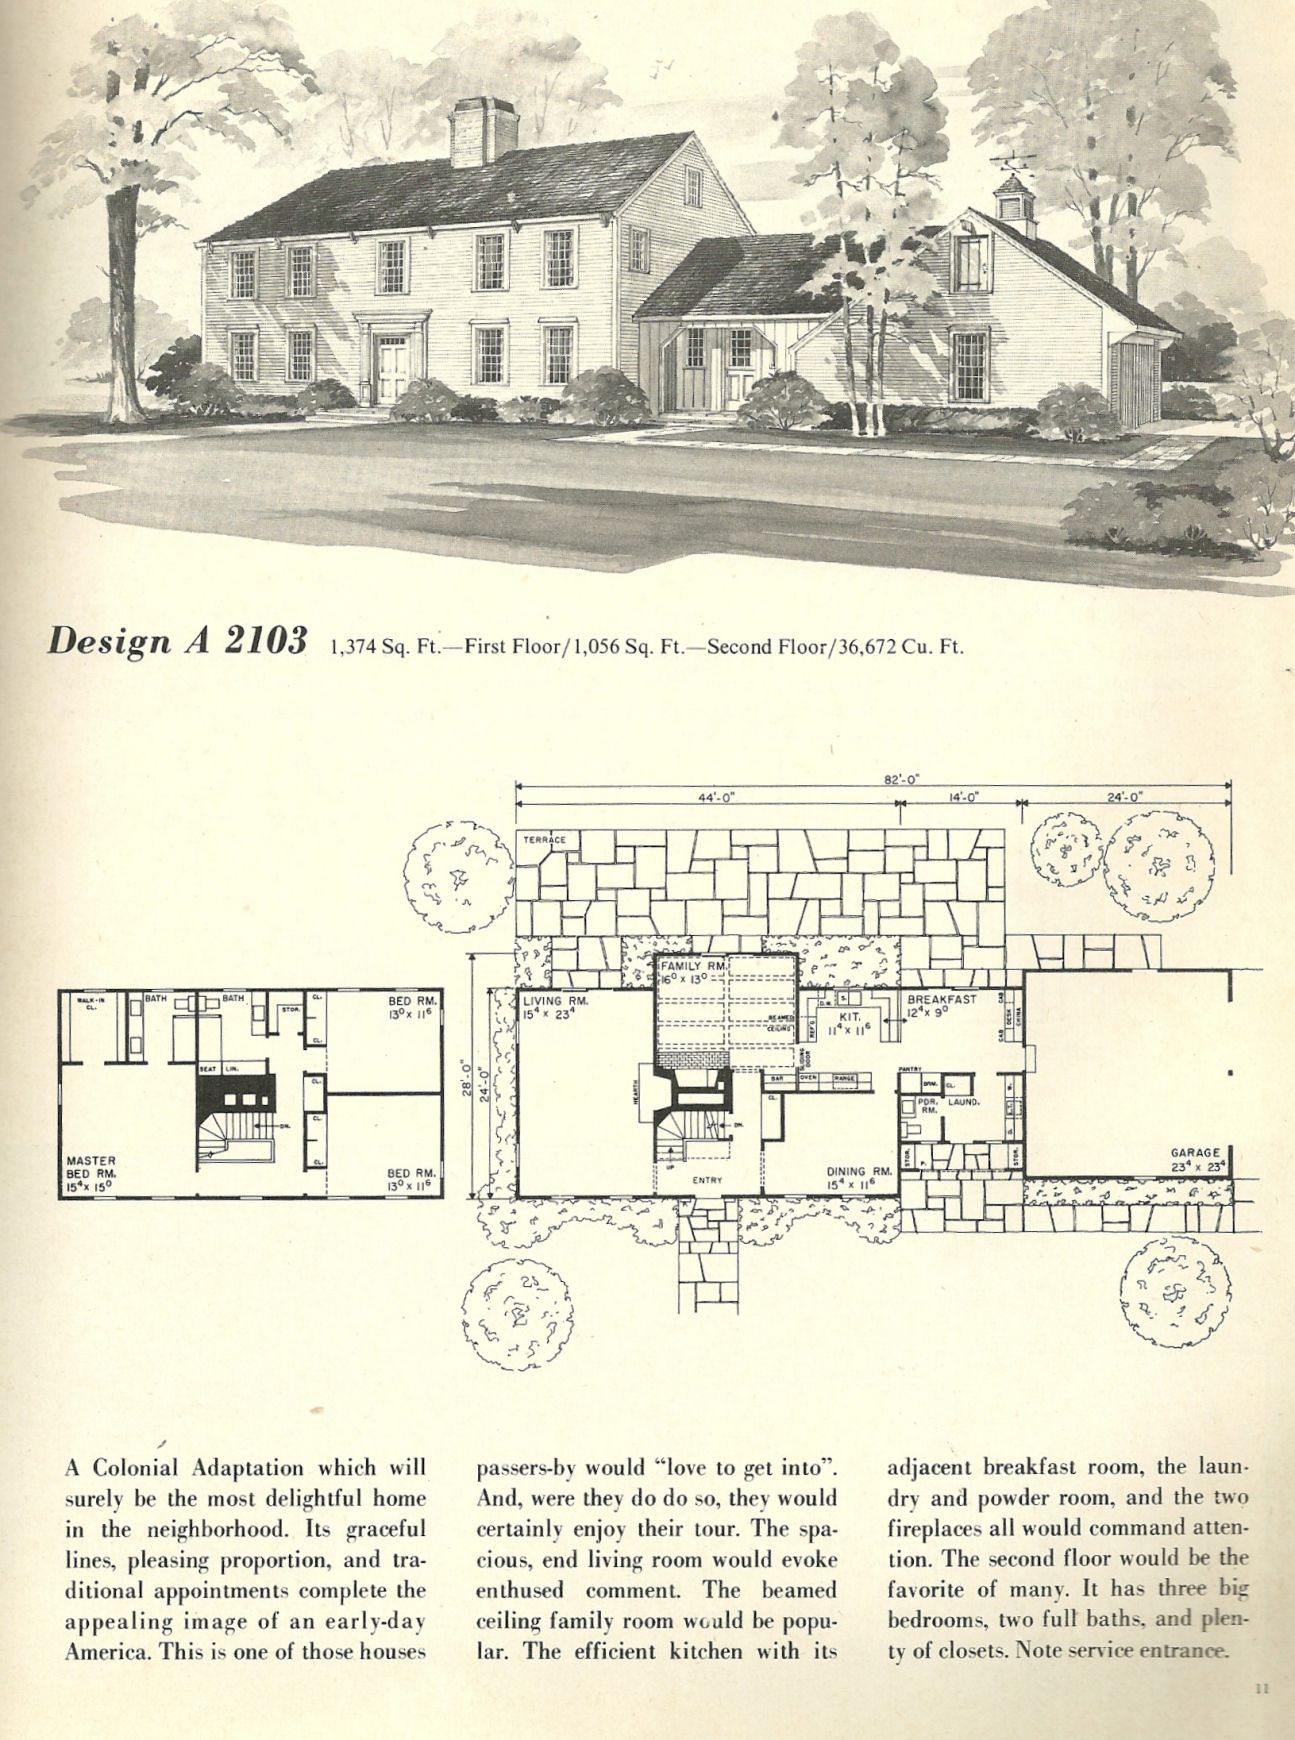 Vintage House Plans This Week We Are Looking At New England Salt Box Style Homes Click On The Photos To E Vintage House Plans Vintage House House Floor Plans